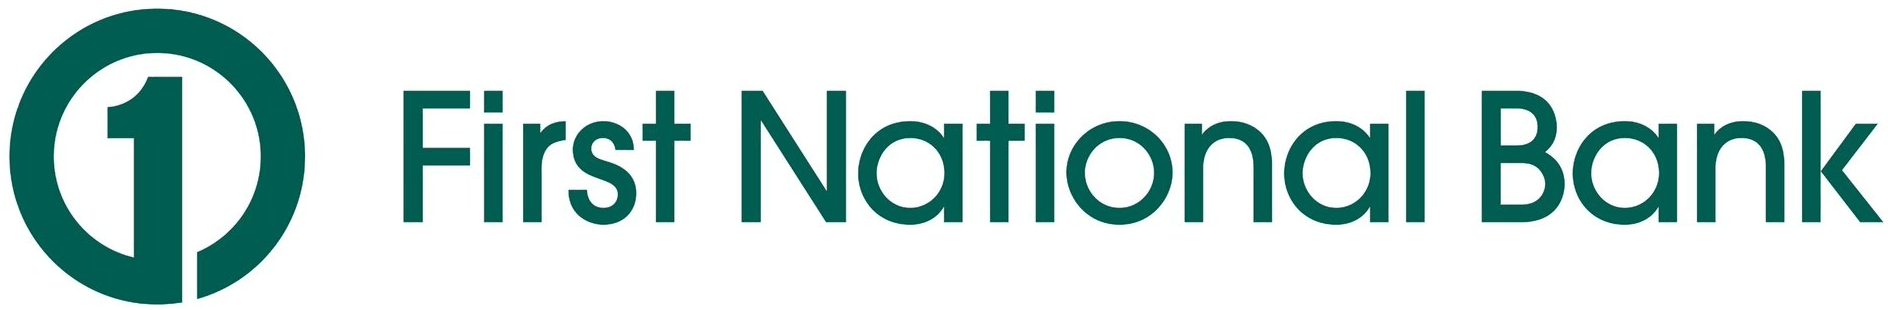 First National Bank thumbnail